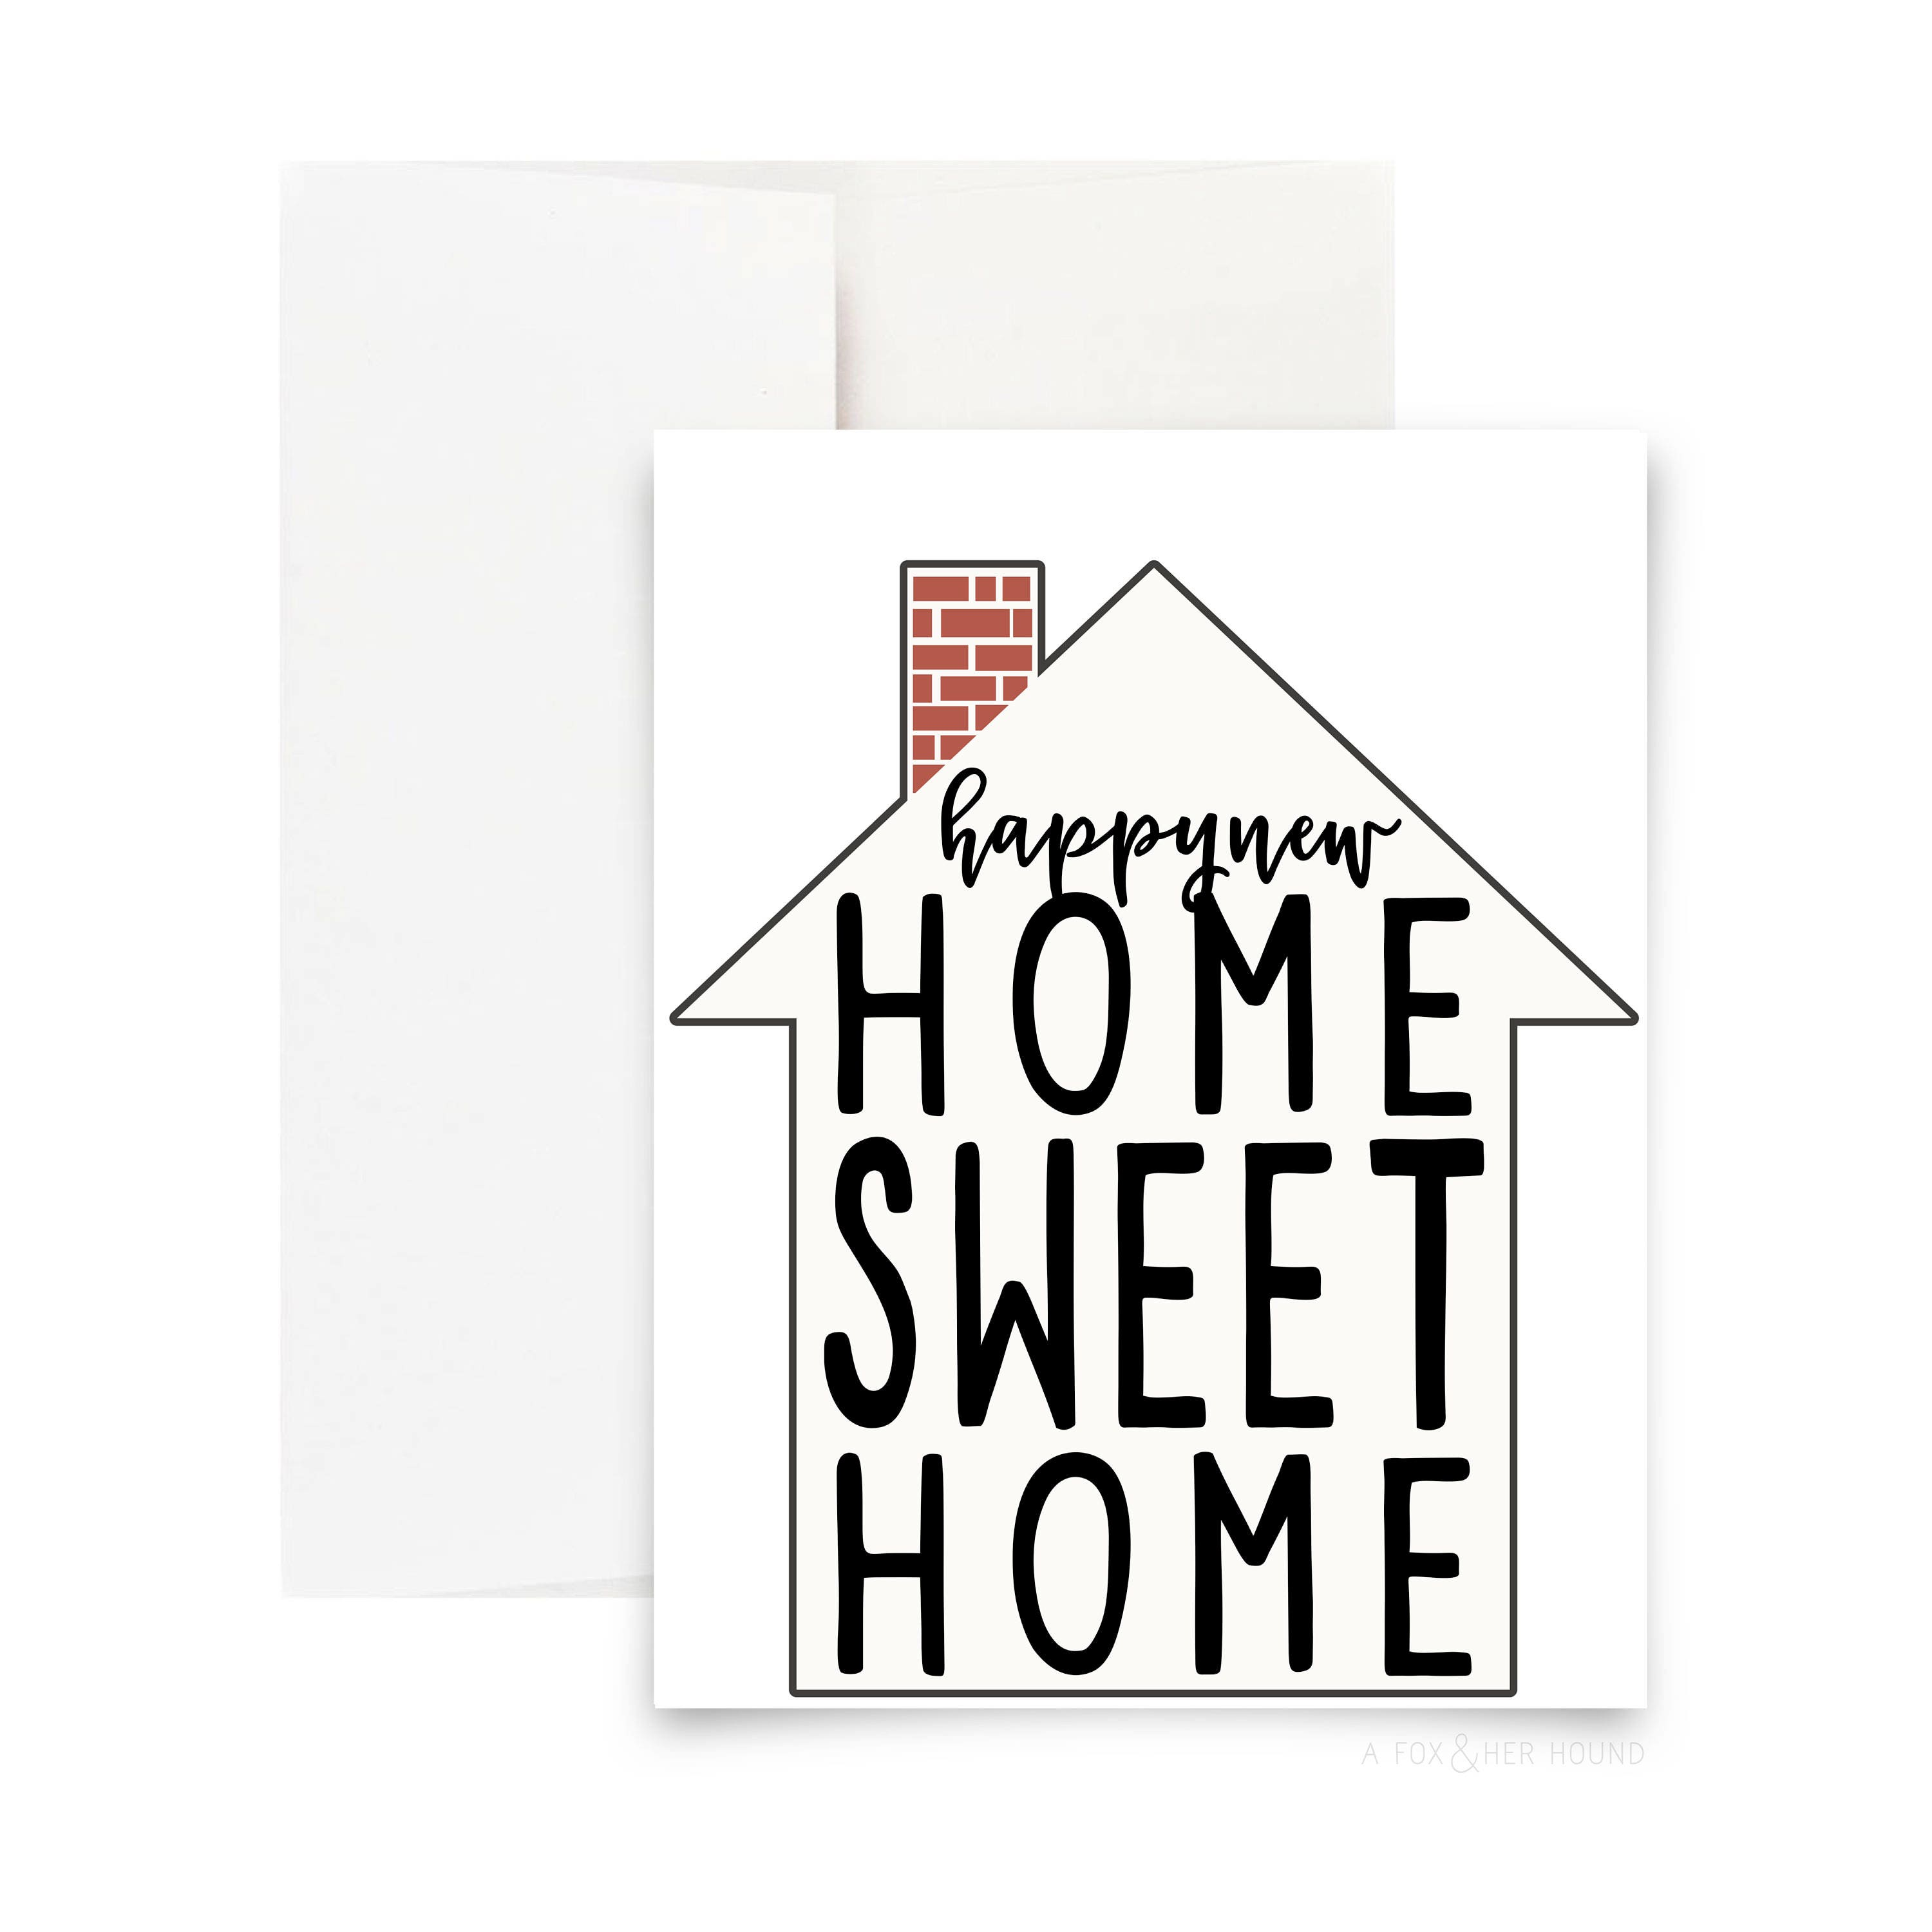 Happy new home sweet home greeting card m4hsunfo